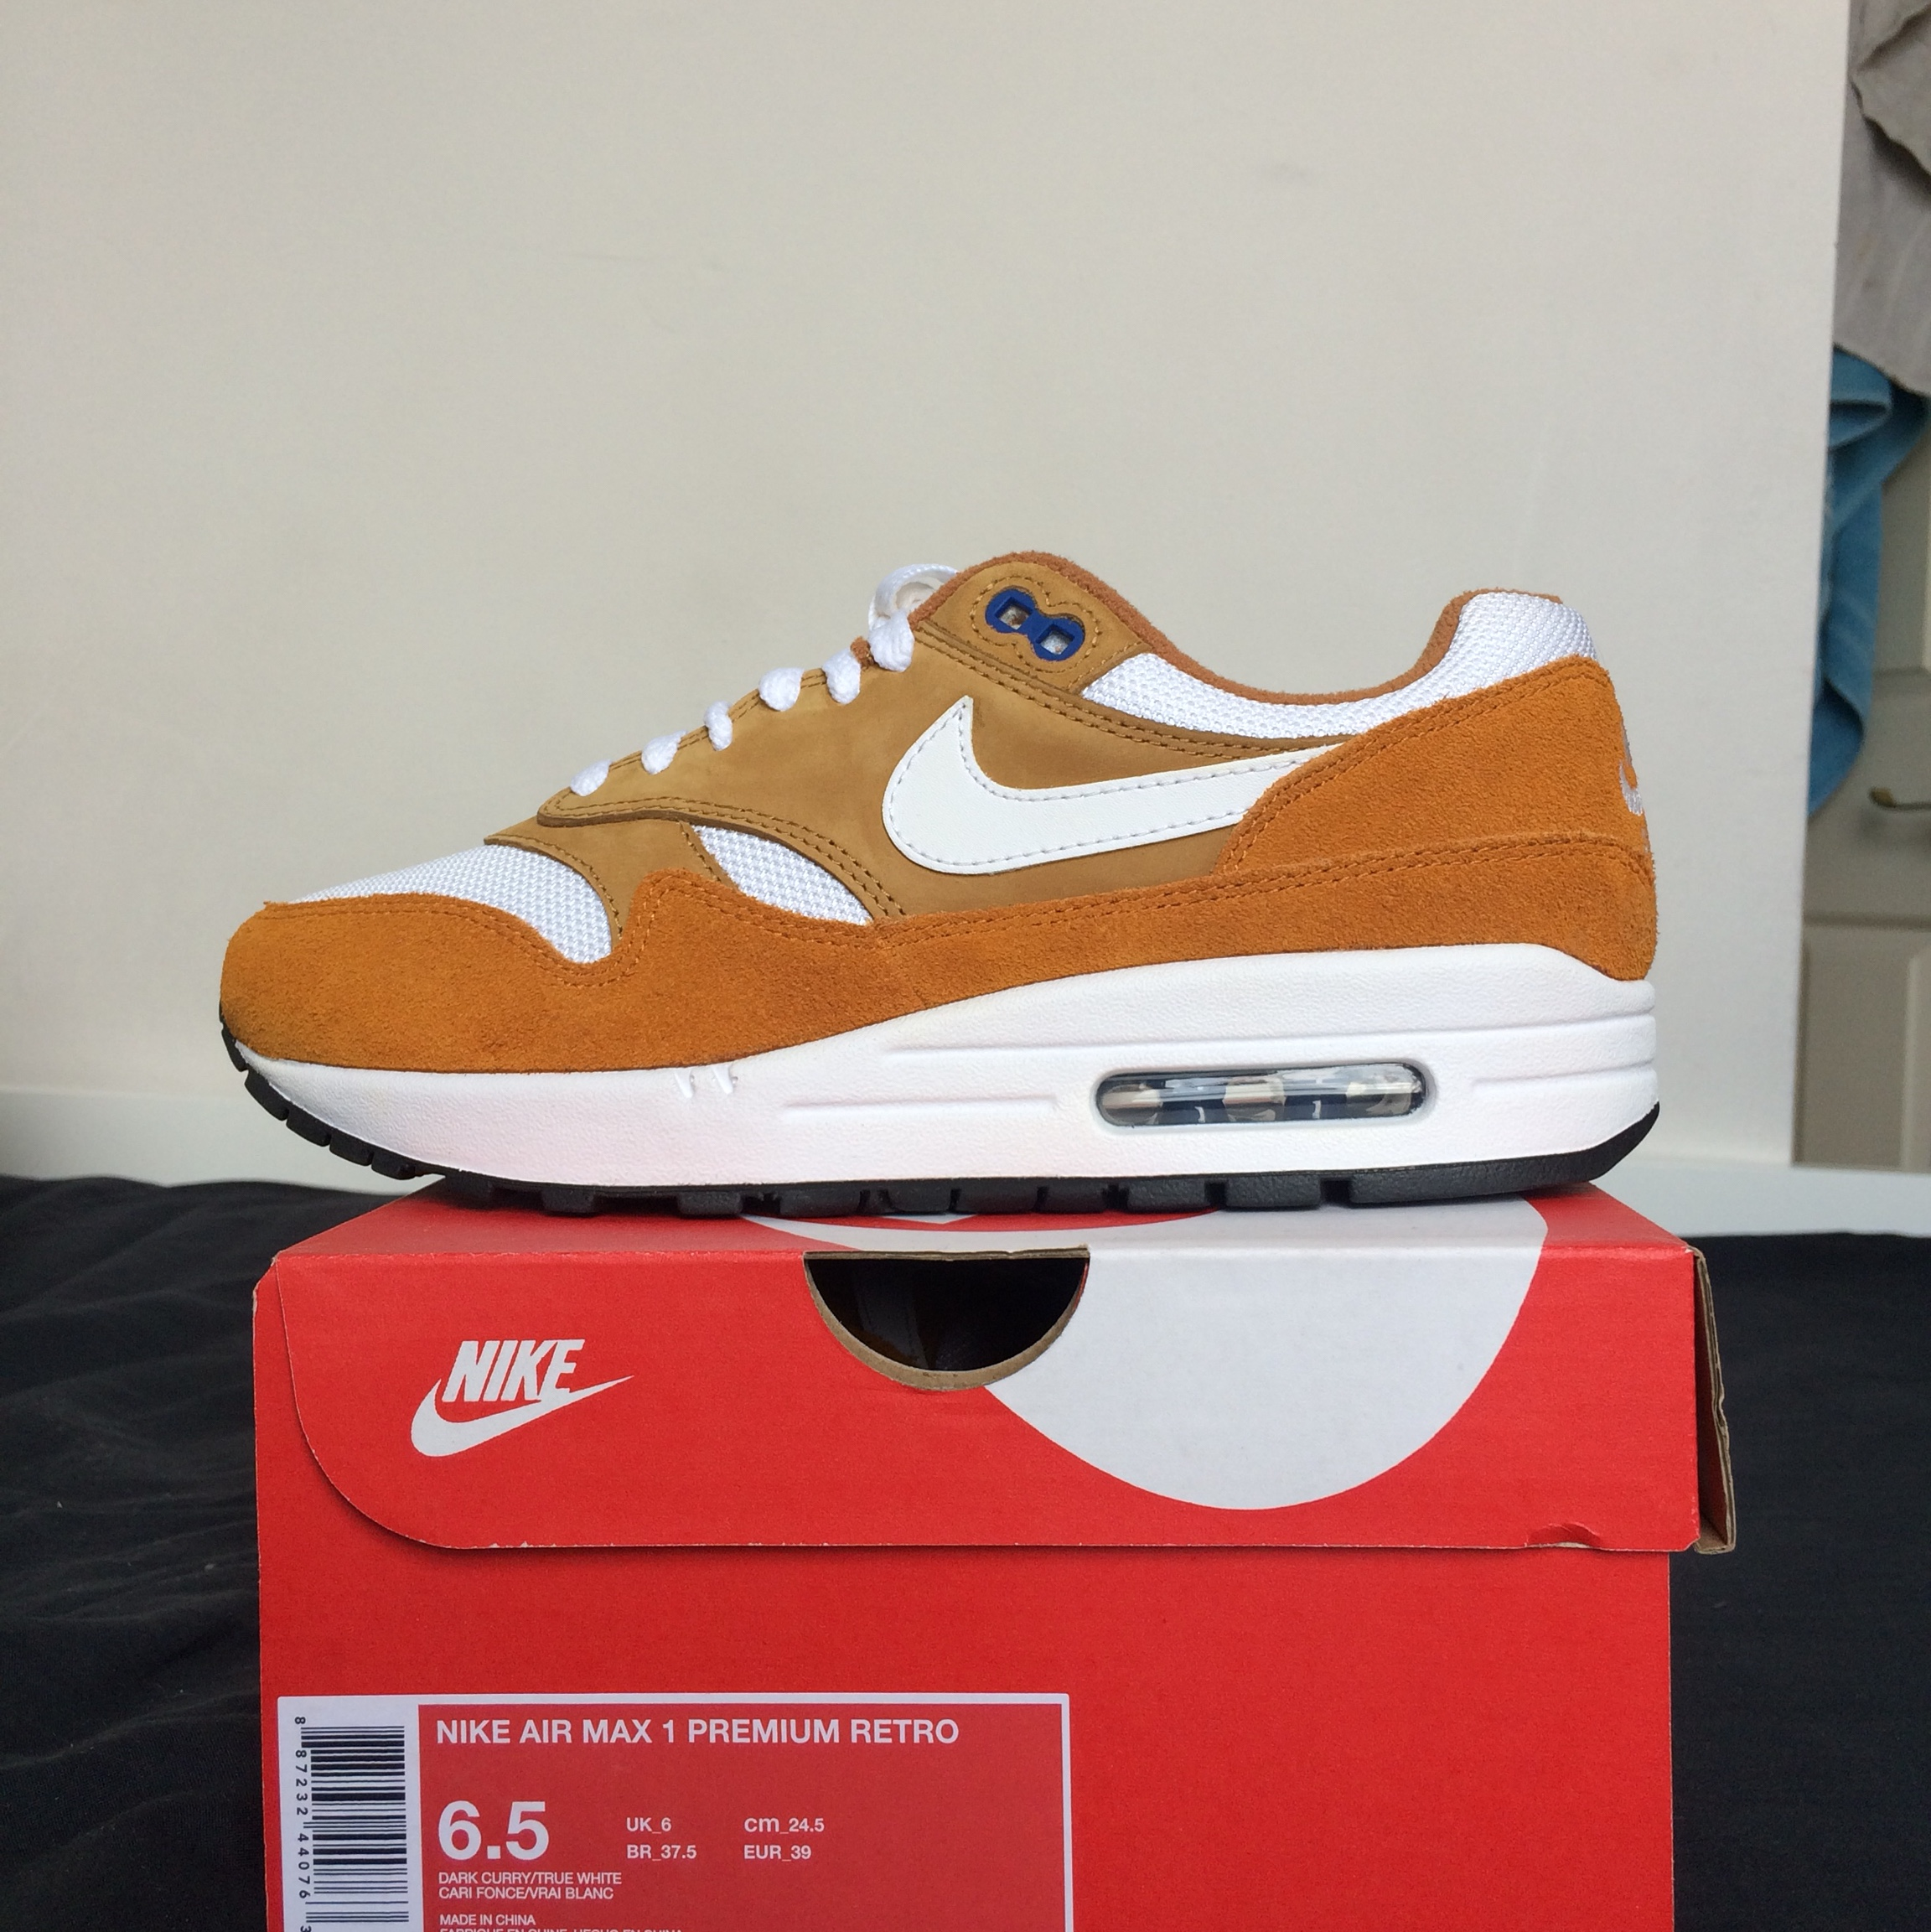 WTS: Air max 1 Curry 2018 Condition: Brand New Size: Depop